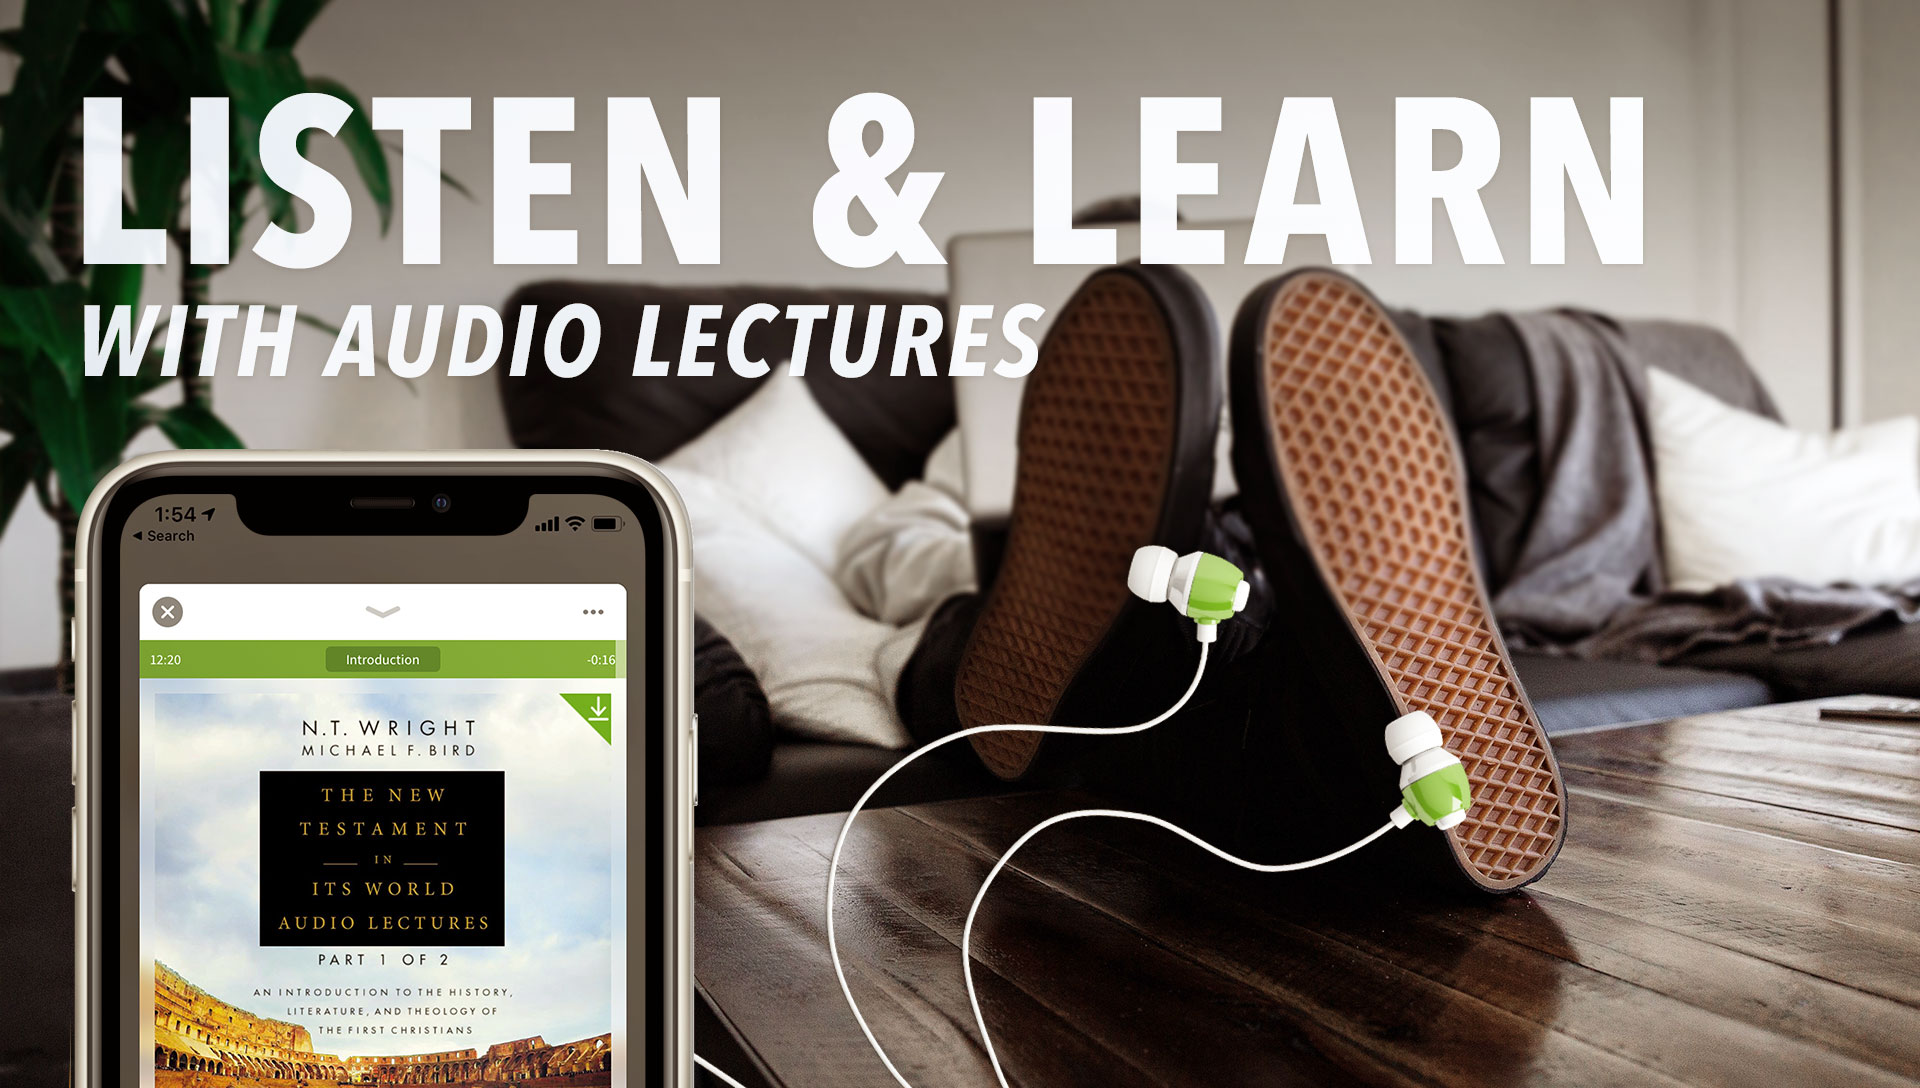 Listen and Learn with Audio Lectures